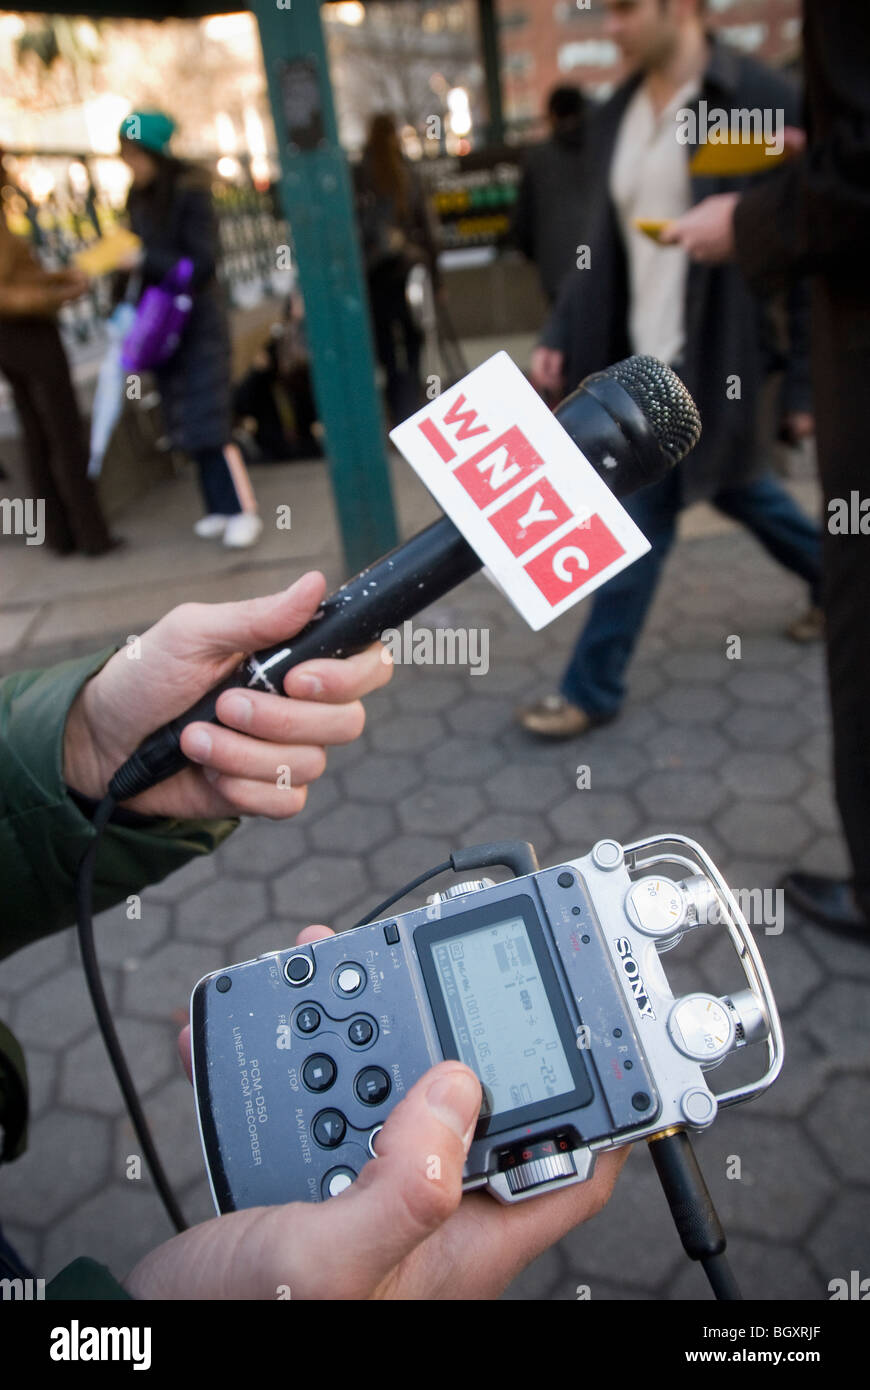 A reporter for WNYC Public Radio uses a Sony digital recorder to collect sound bites at a news event - Stock Image